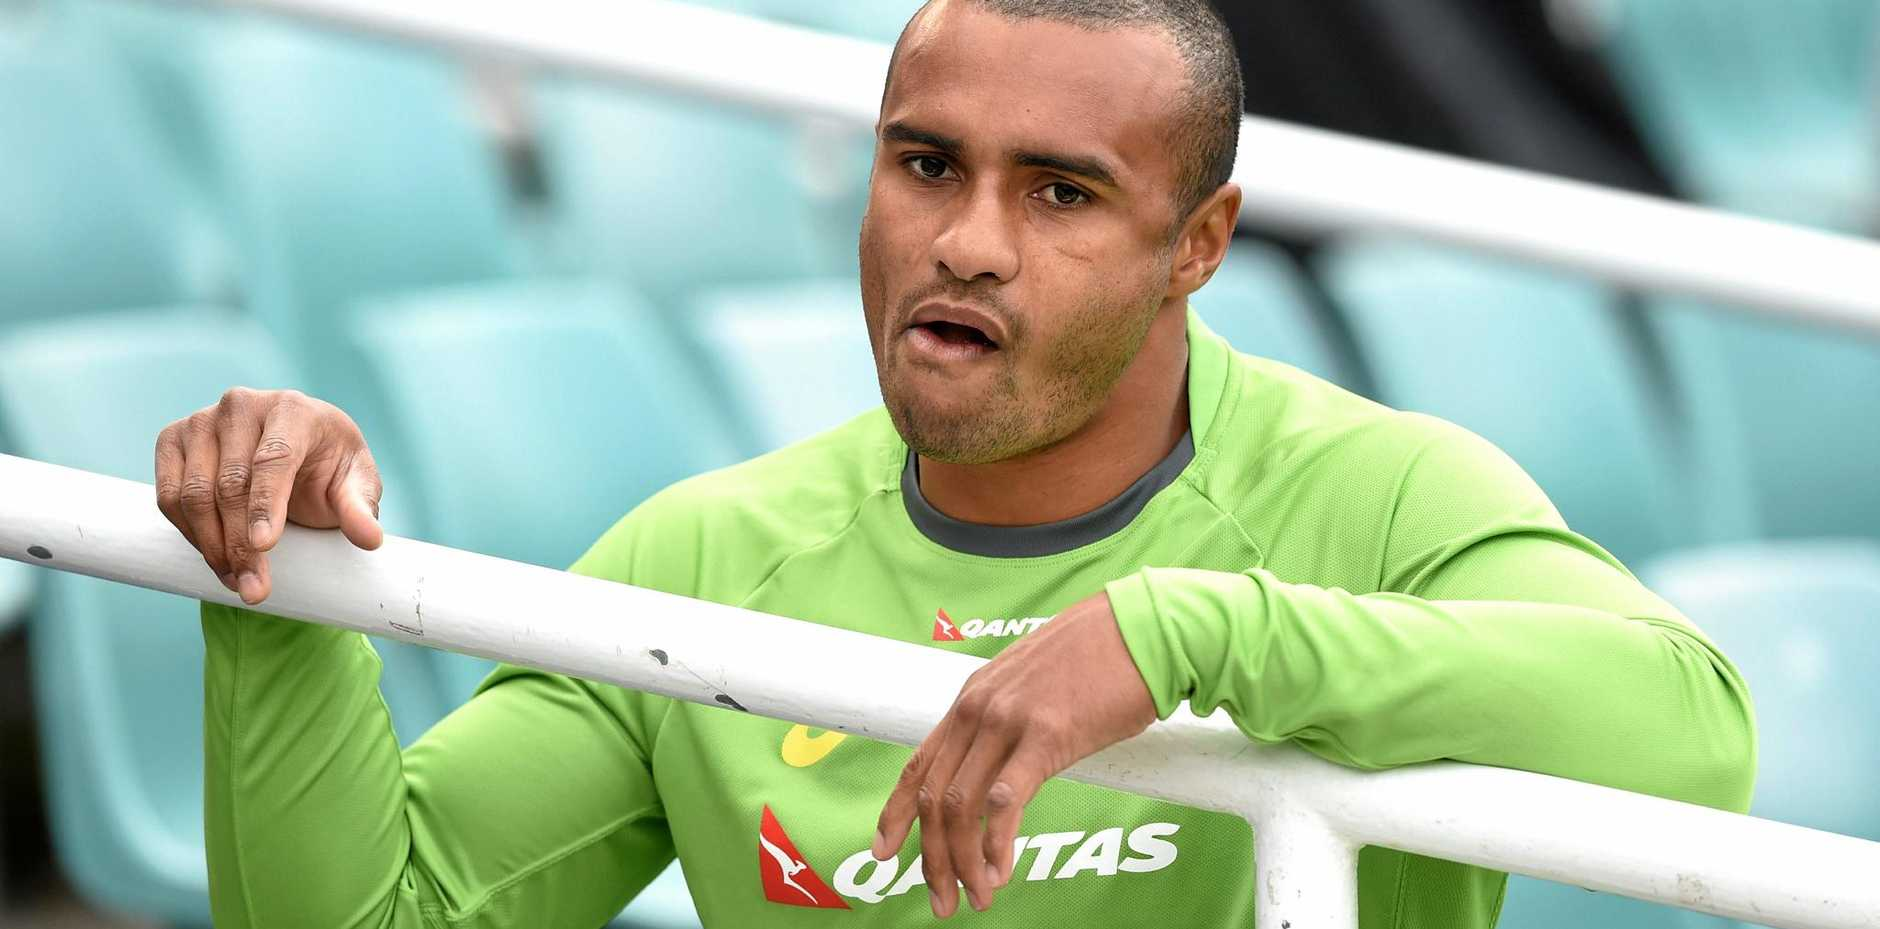 Australian rugby union player Will Genia arrives for a Wallabies training session in Sydney.